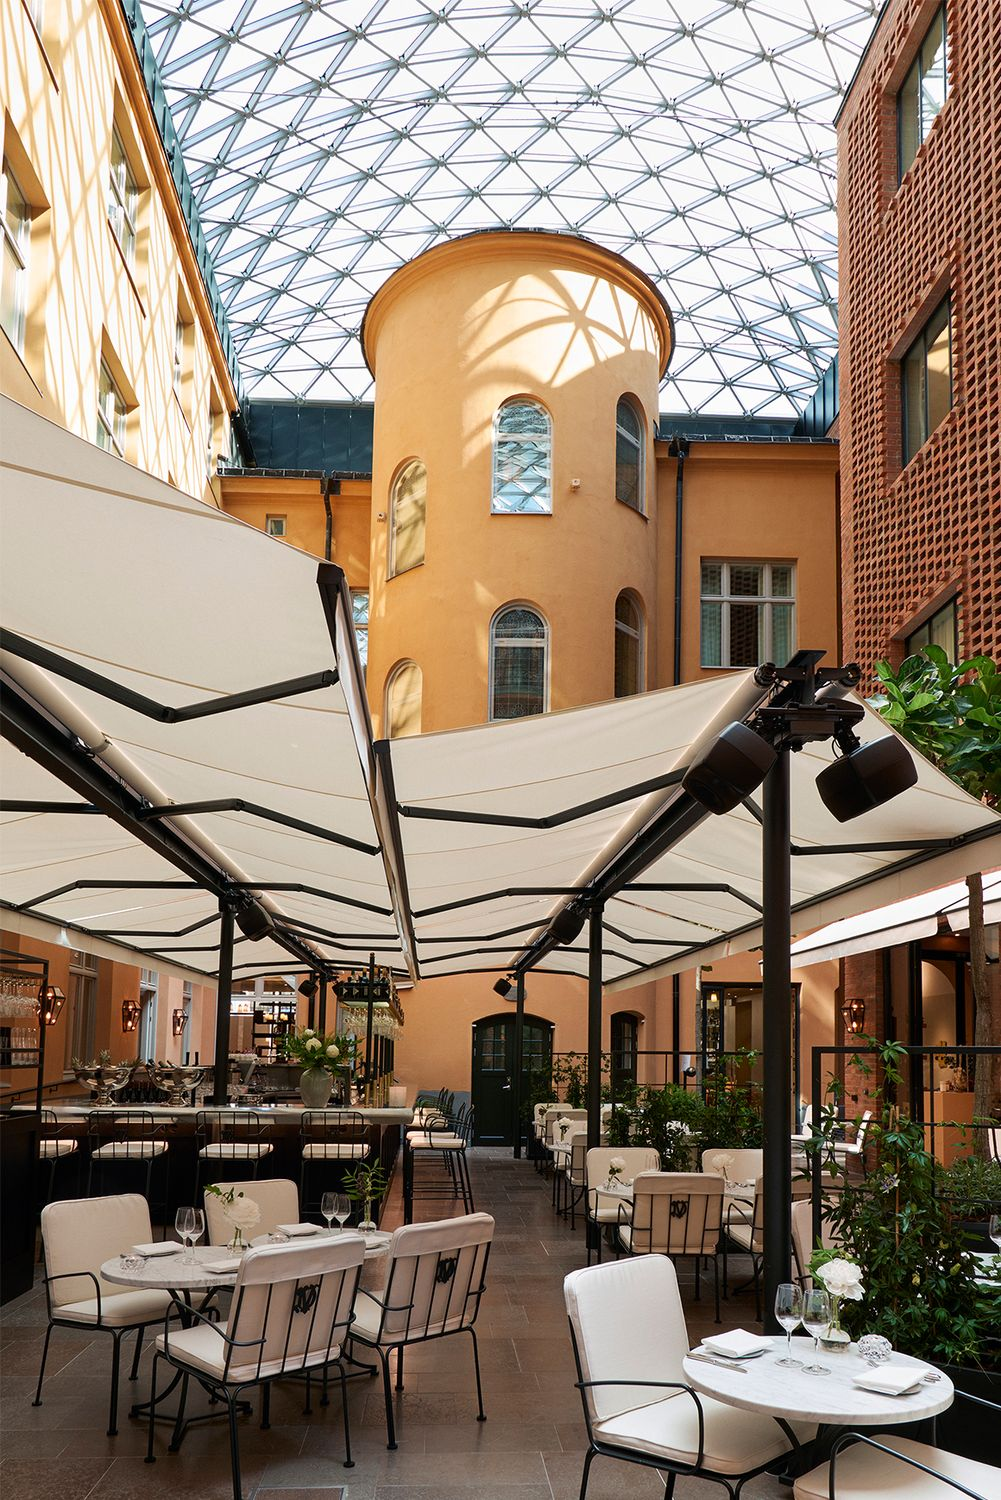 Villa Dagmar – a sister hotel to Hotel Diplomat – has opened in one of Stockholm's best locations next to Östermalm's Market Hall